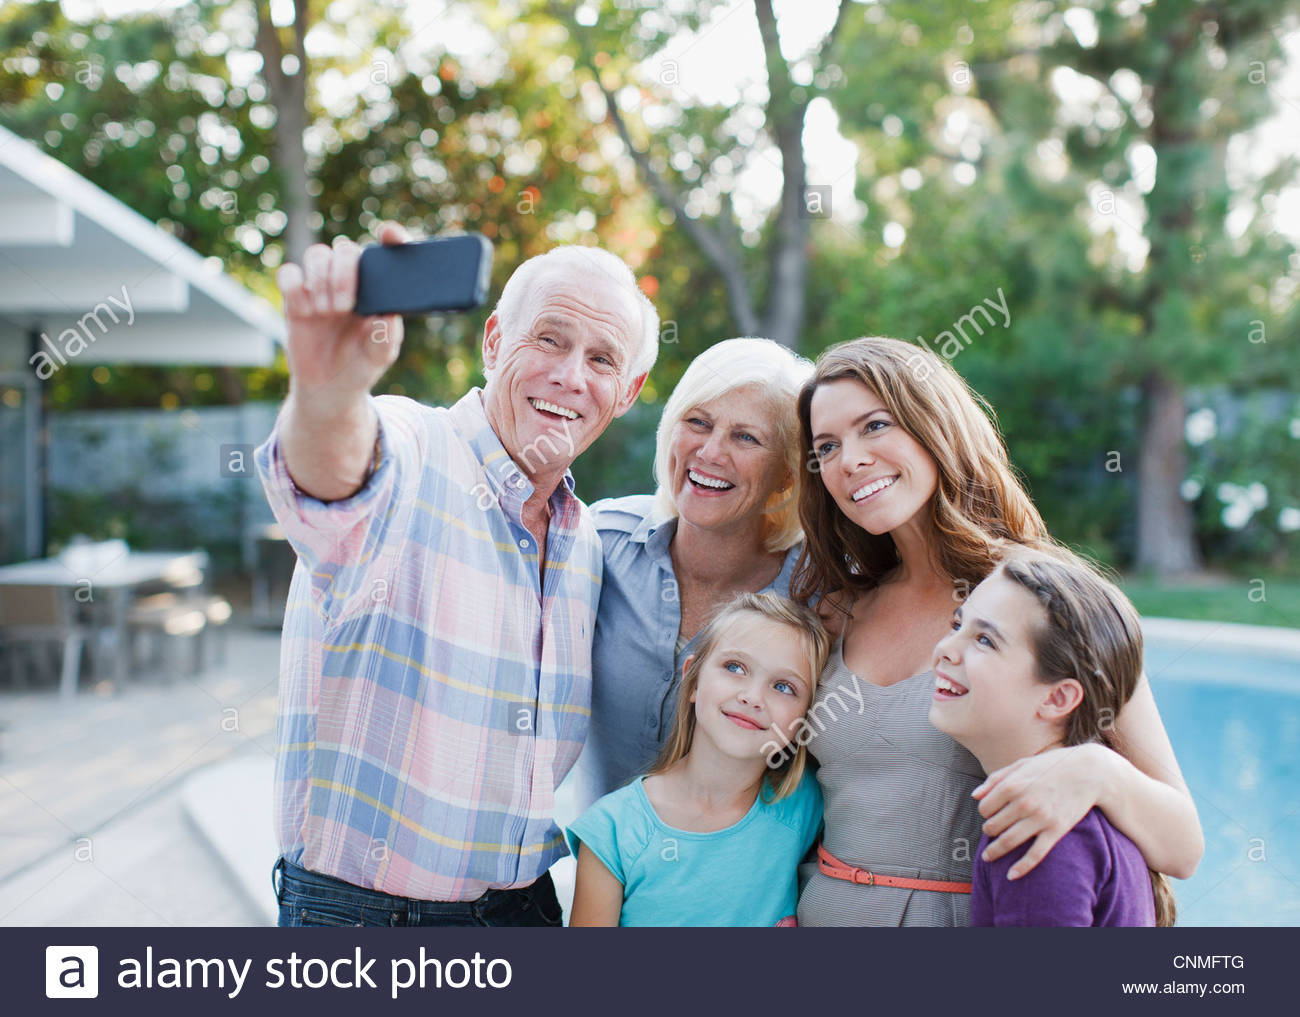 Family taking picture of themselves outdoors - Stock Image